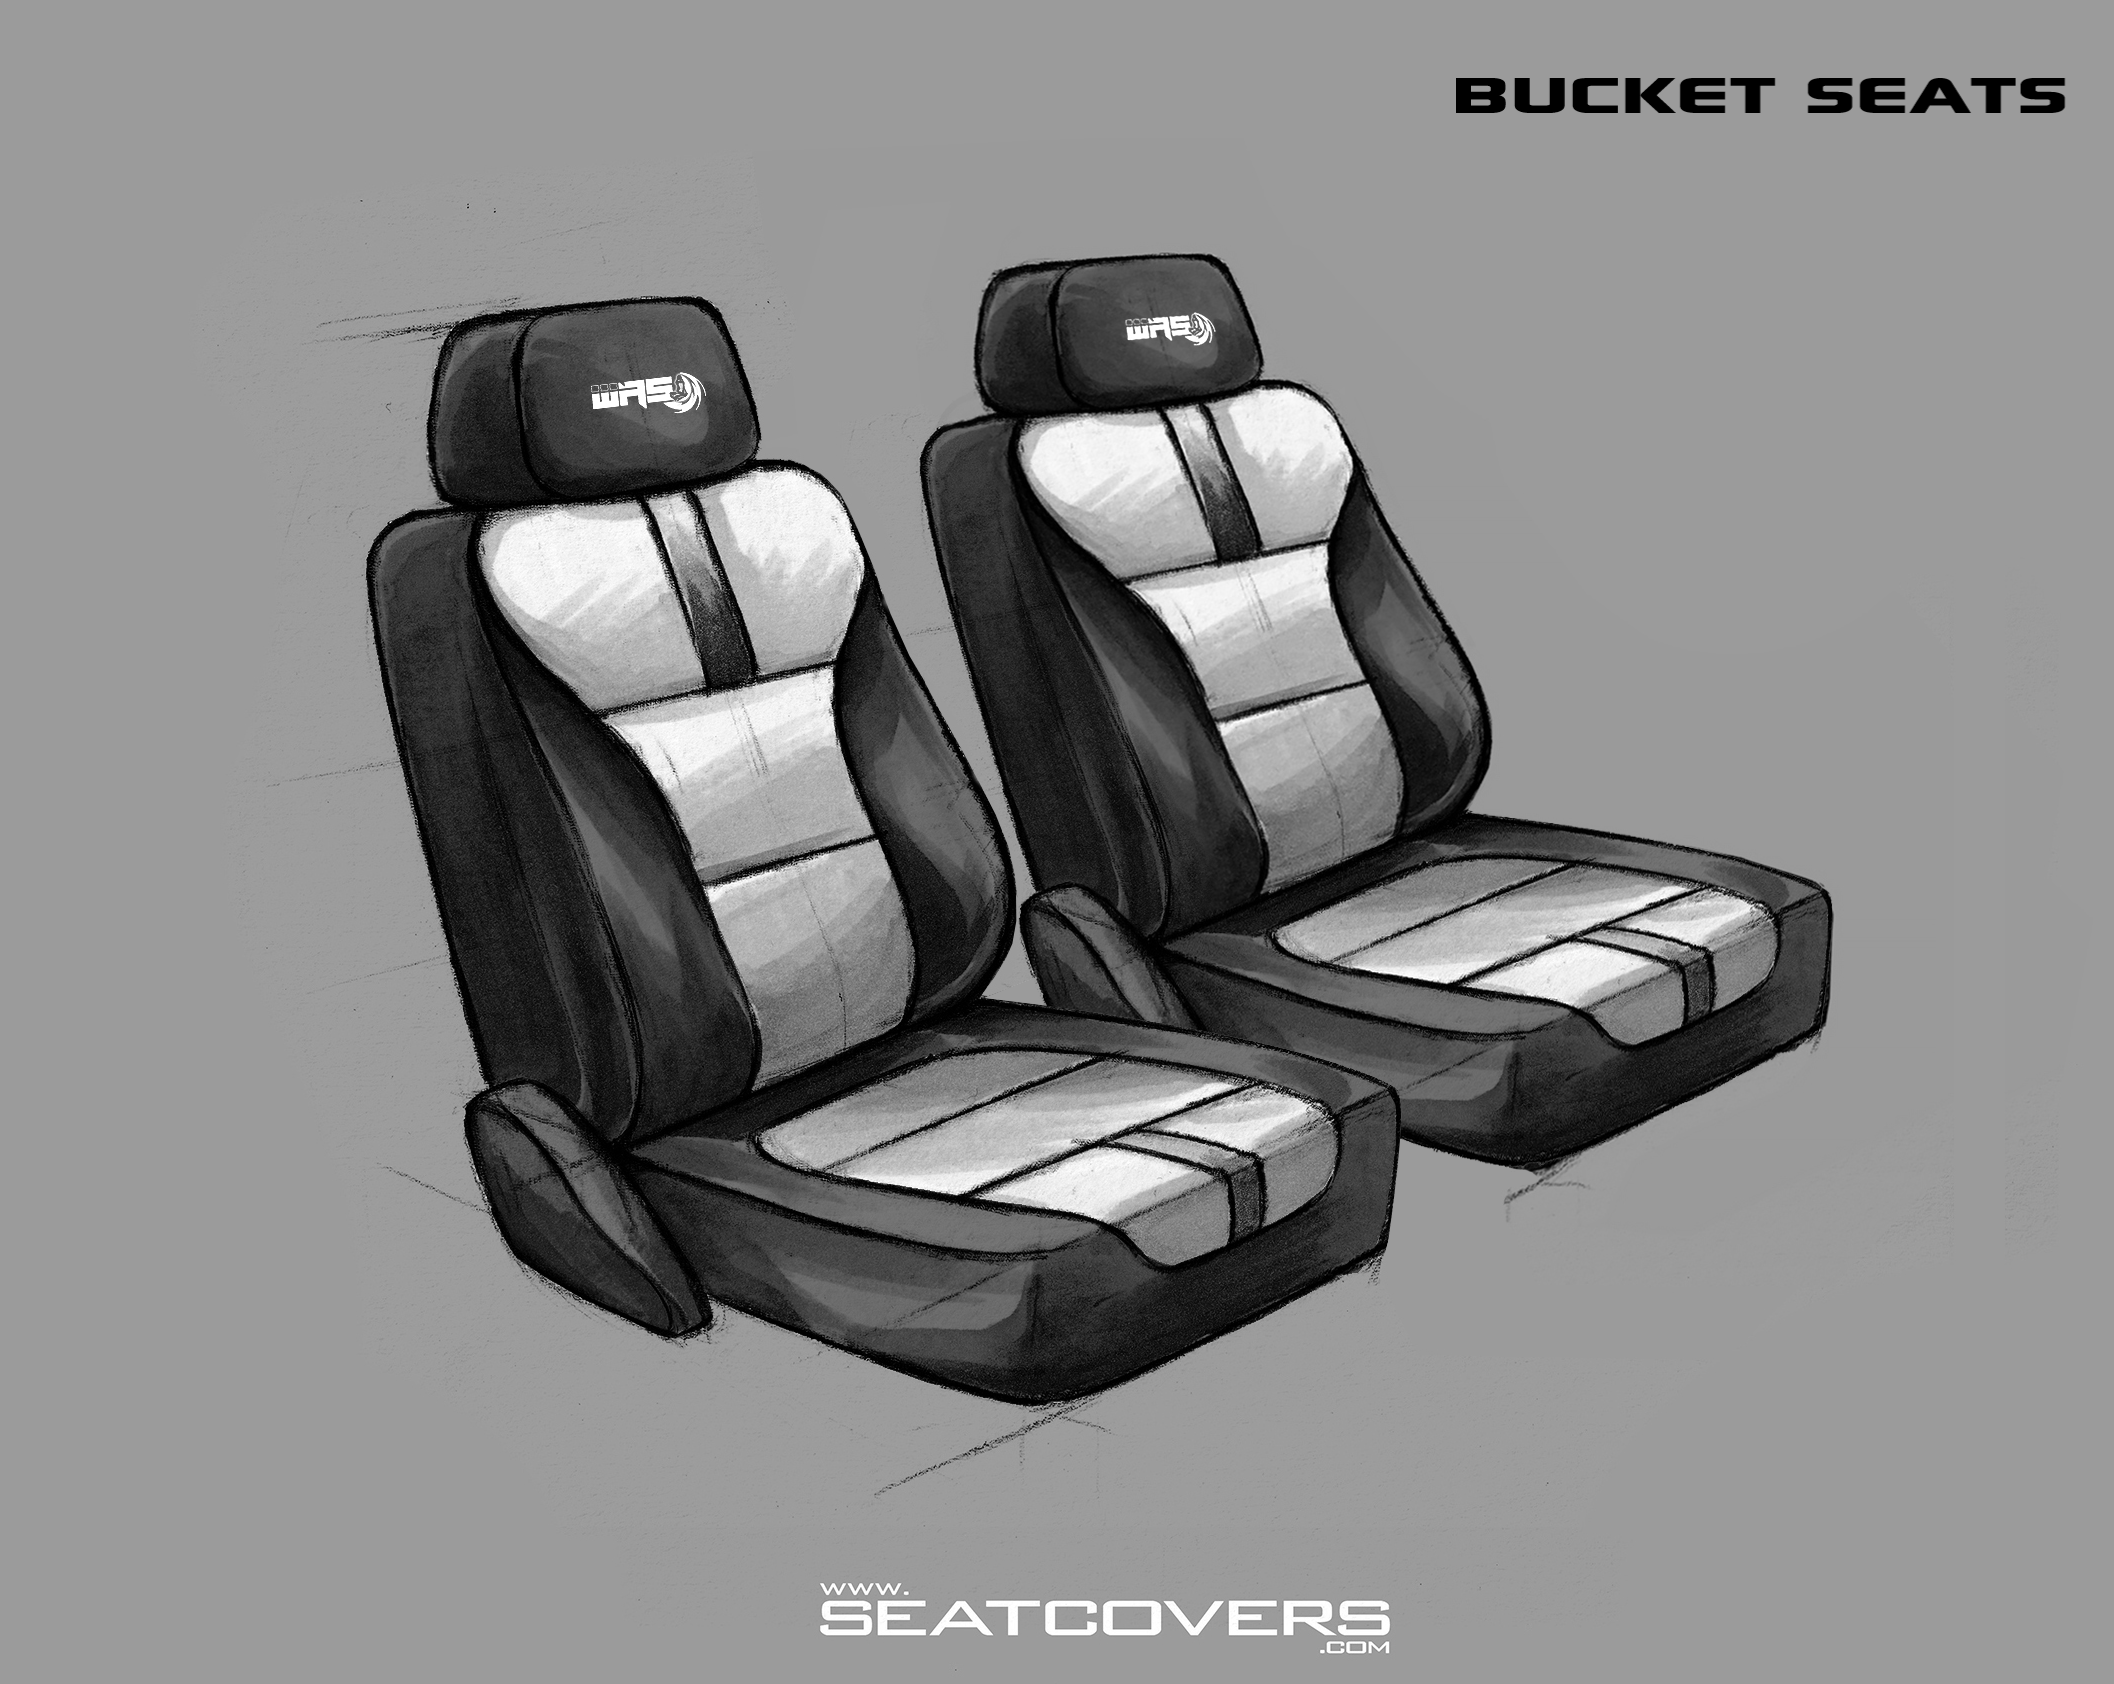 Ford Explorer seat covers front seats seatcovers.com